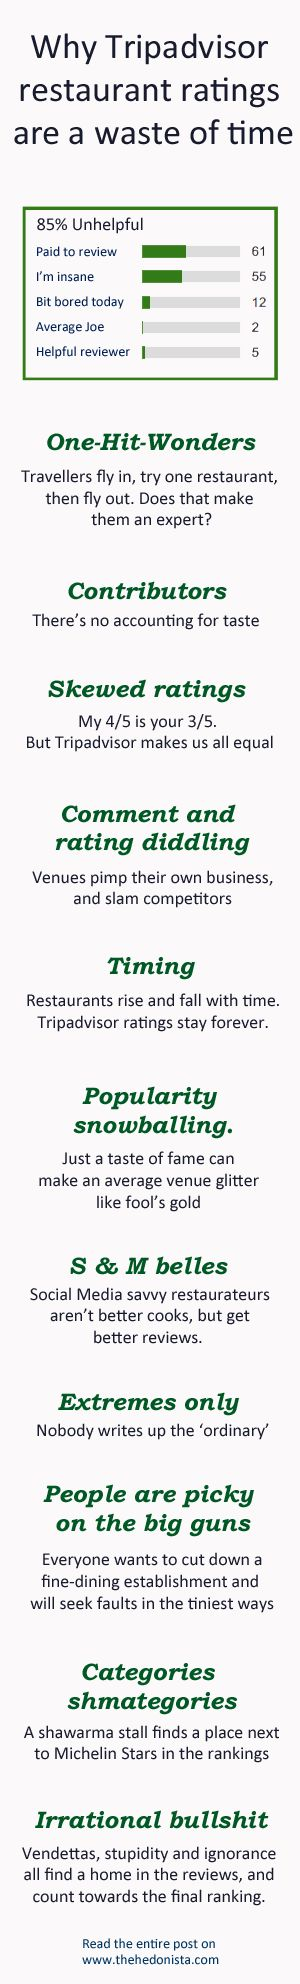 Why Tripadvisor Restaurant Ratings are a Waste of Time - The Hedonista